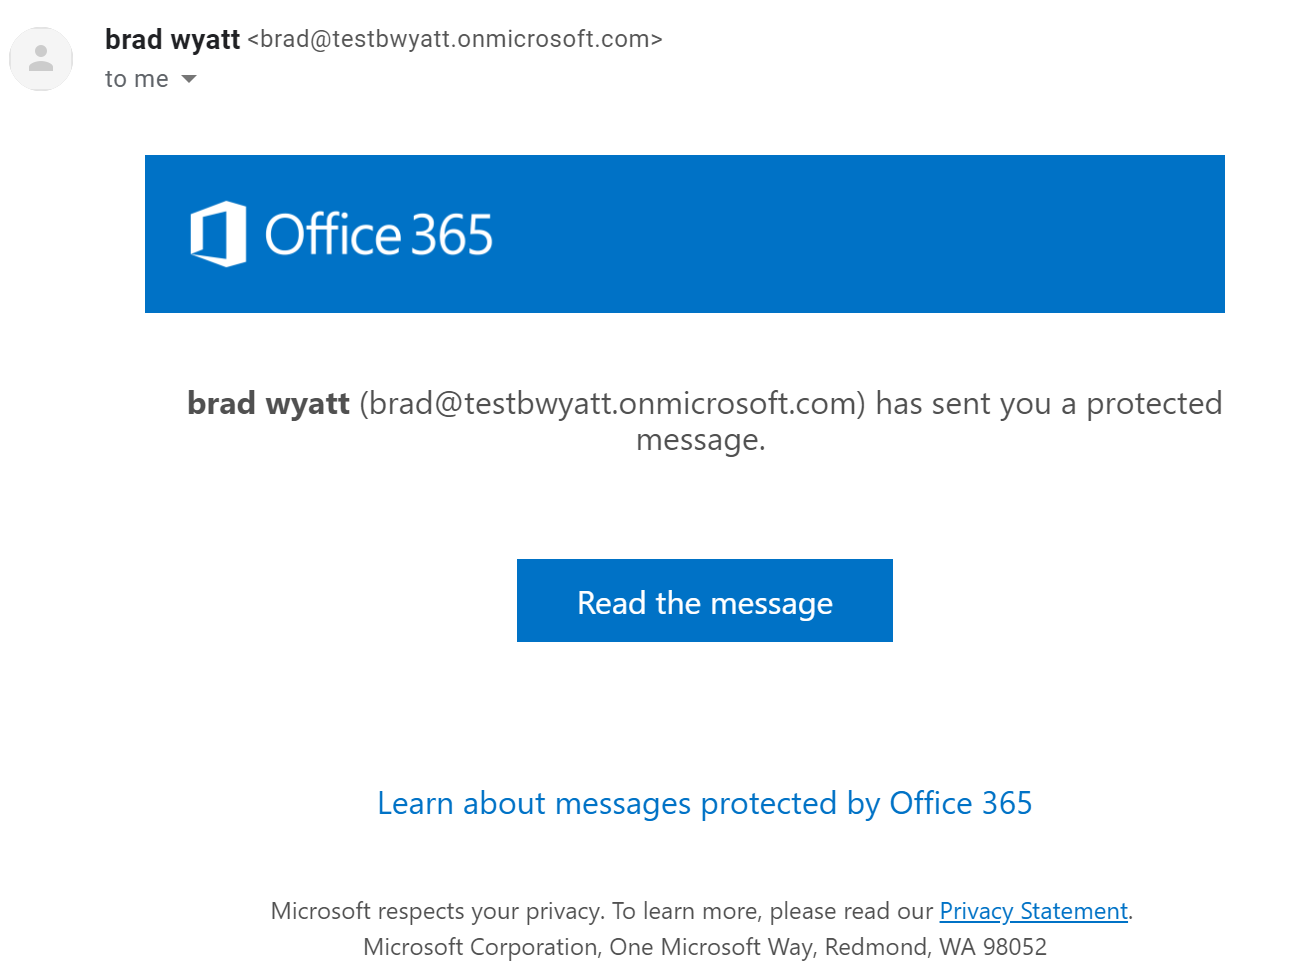 Customize your Office 365 Encrypted Messages with your Organizations